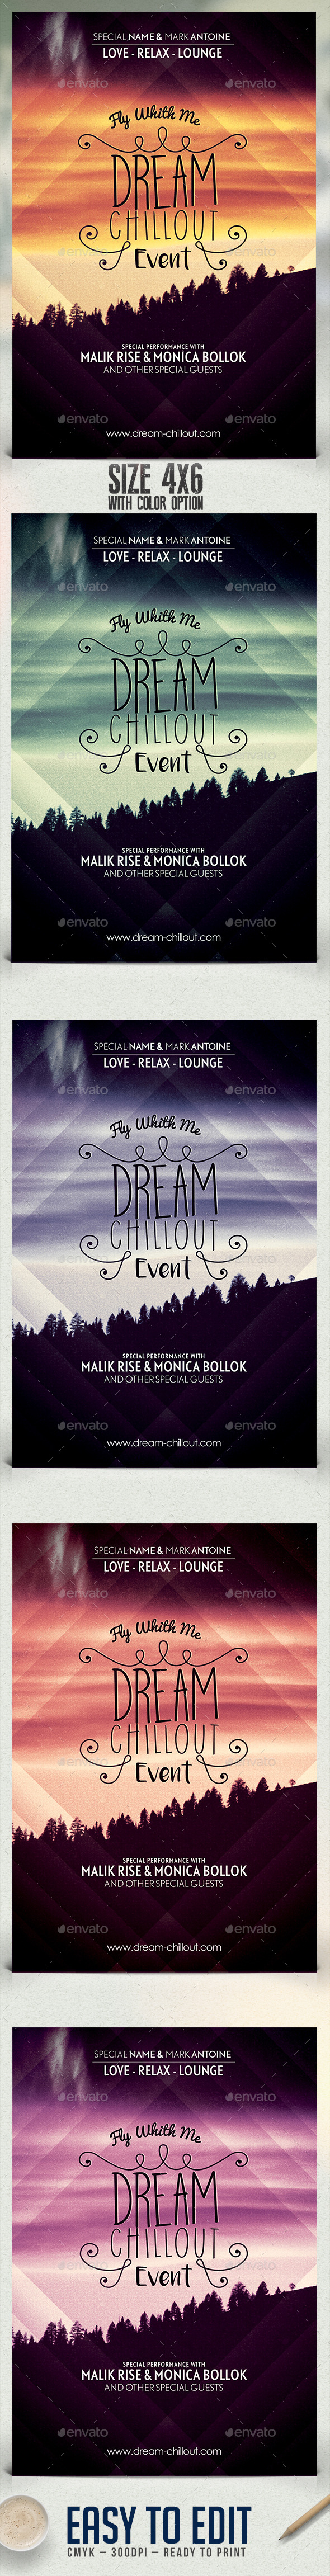 Dream Chillout Flyer Template - Clubs & Parties Events